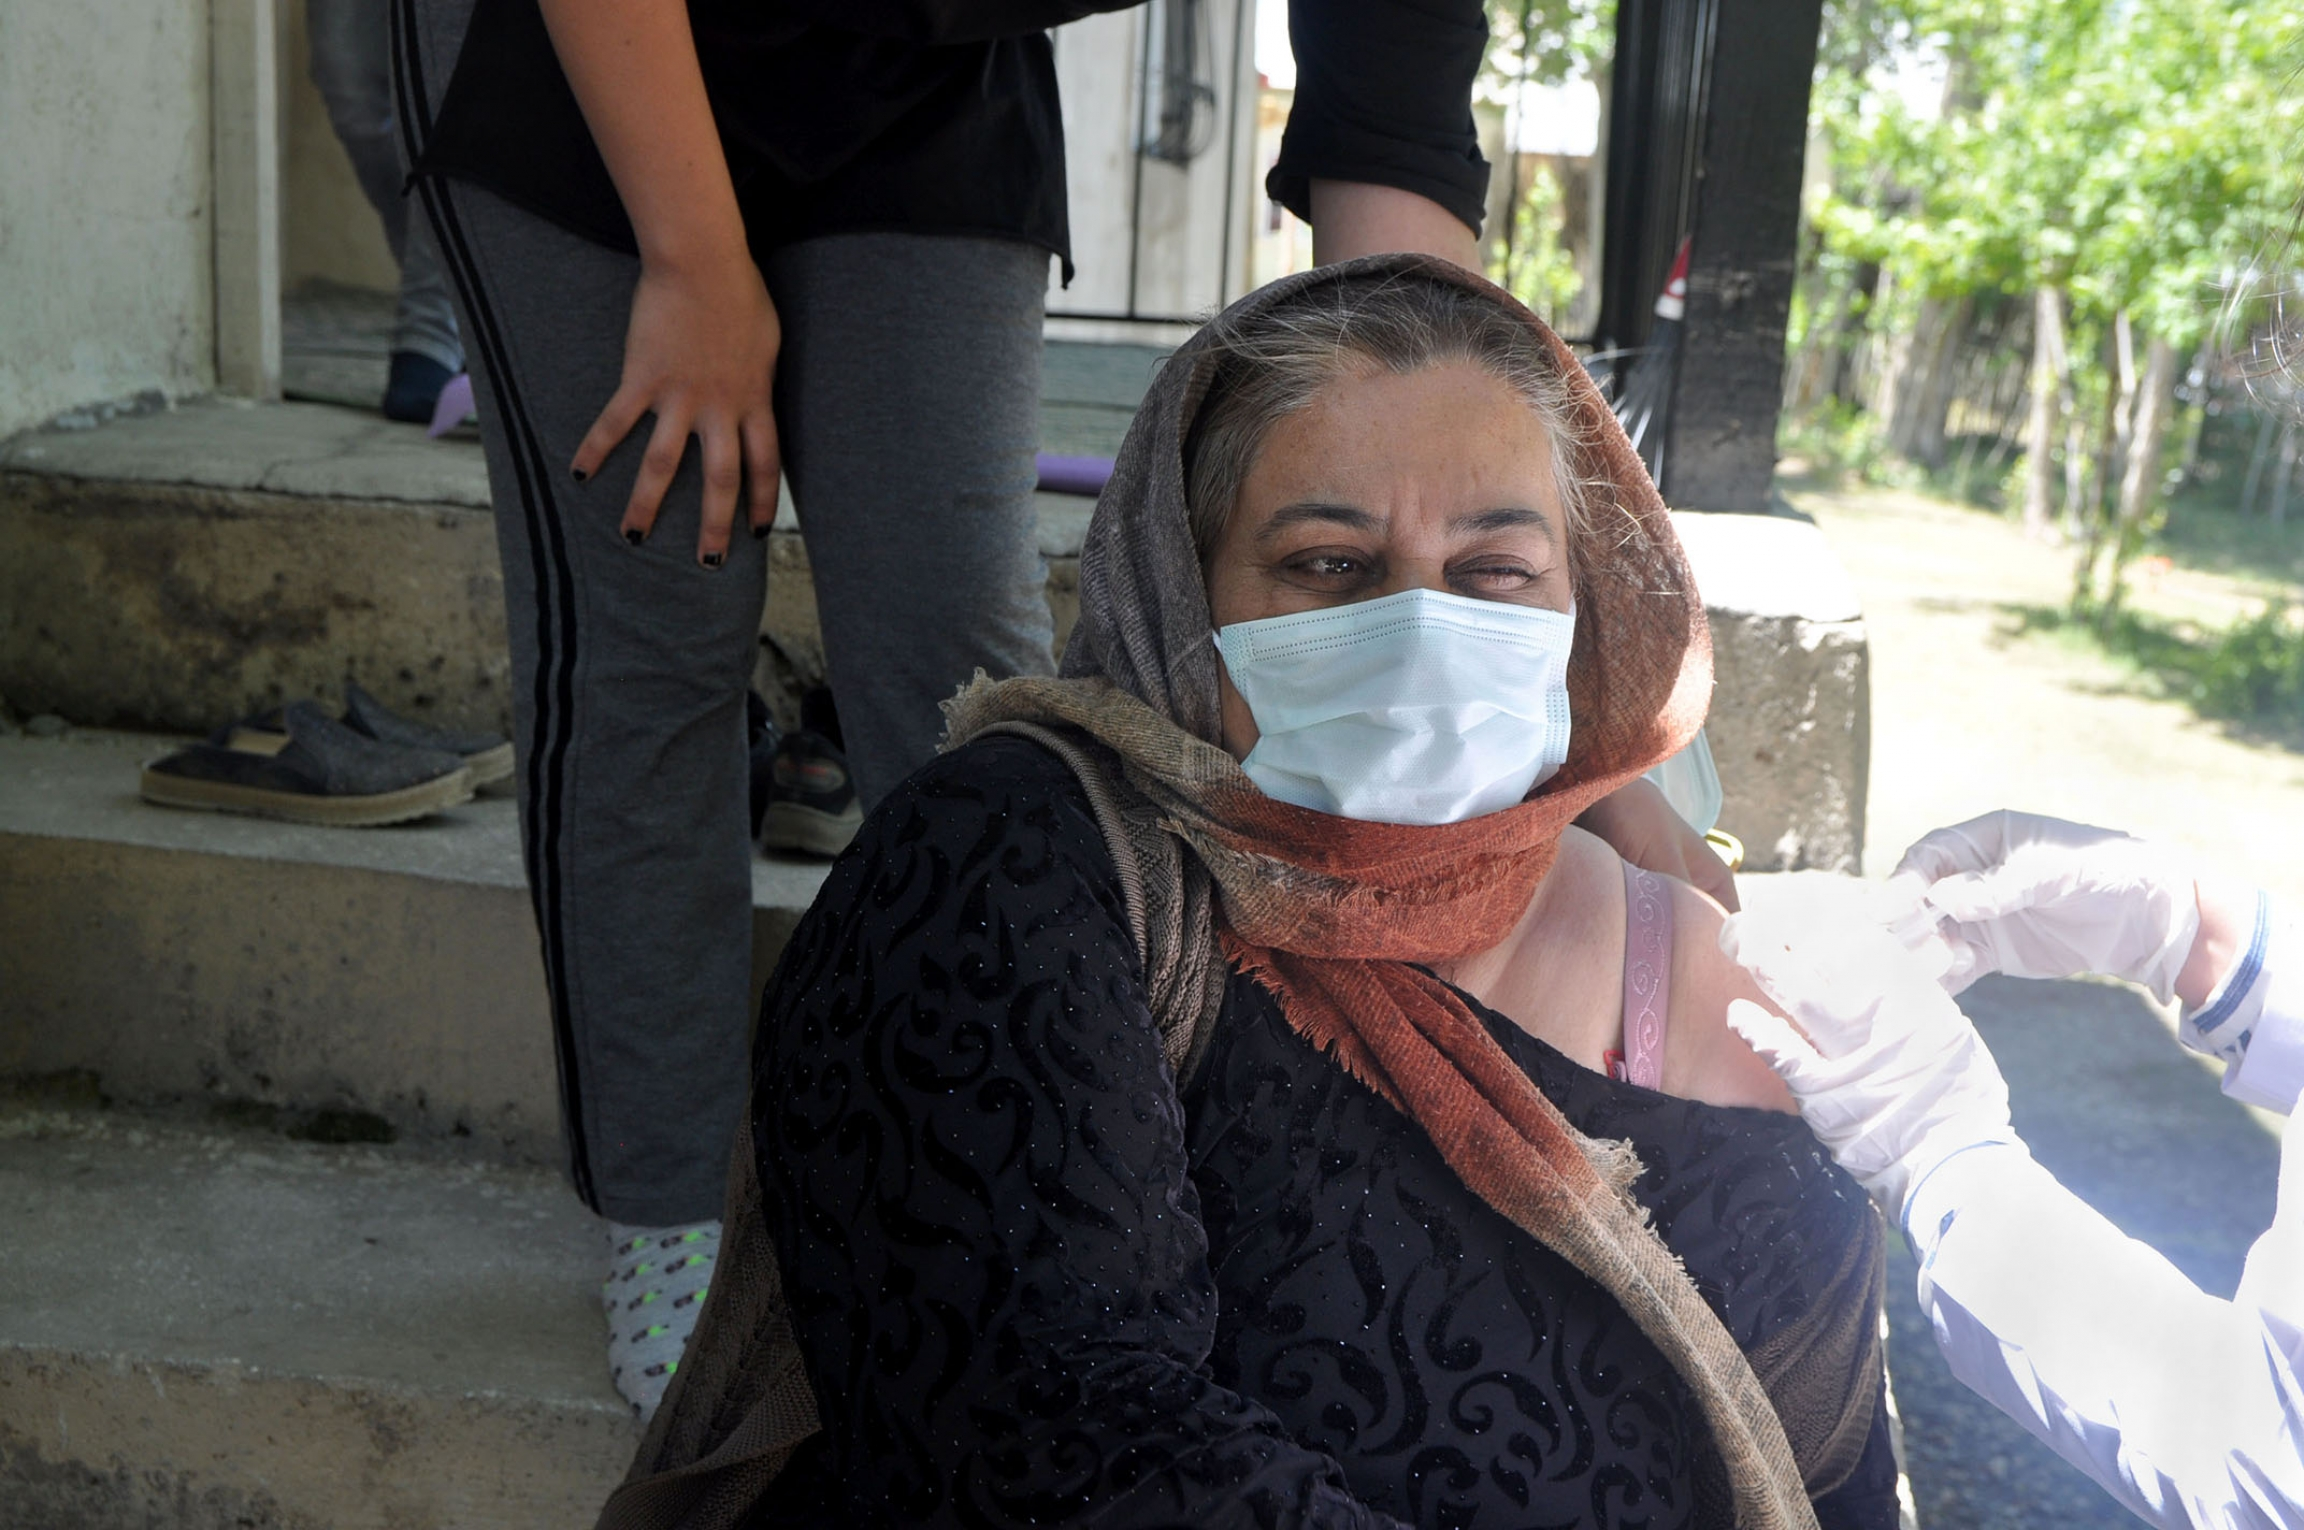 Emine Saruhan winces during a COVID vaccination shot on her front porch in the town of Ömerova. The 46-year-old has a health condition, and hoped a vaccine would alleviate some of her fears.